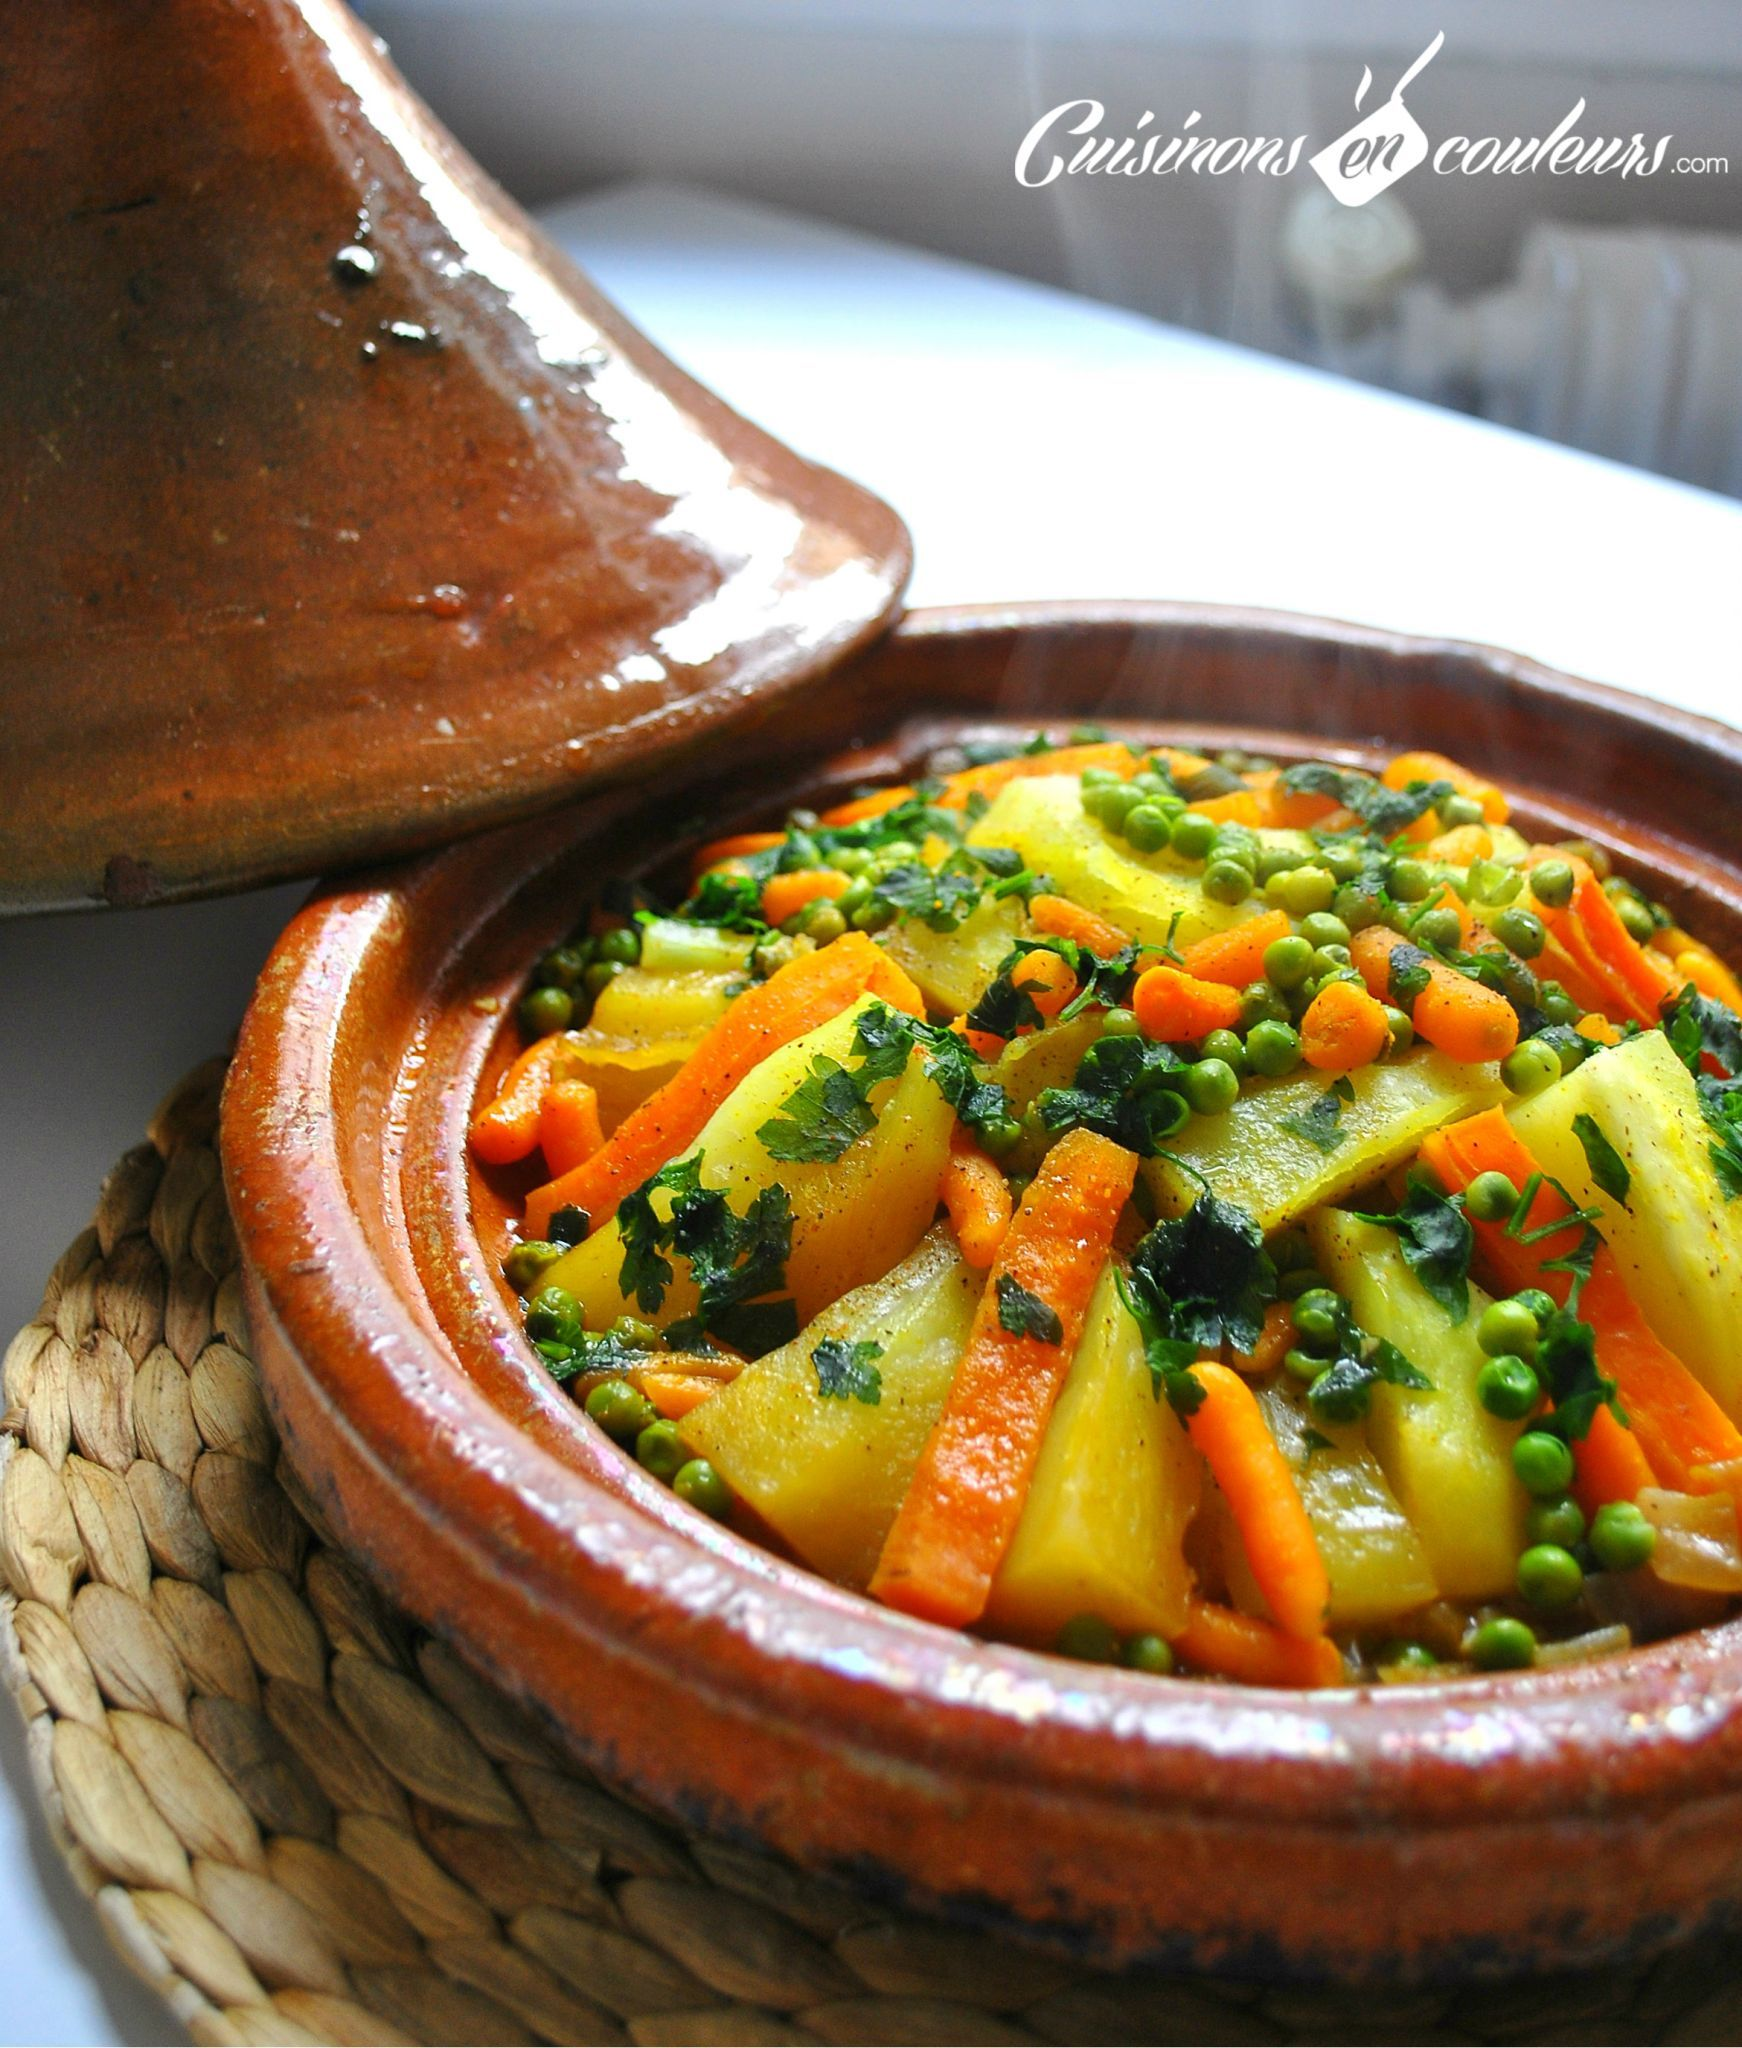 Dsc0196 recettes pinterest drink foods and recipes dsc0196 moraccan recipesmoroccan tagine recipesmoroccan food recipesvegetarian forumfinder Image collections